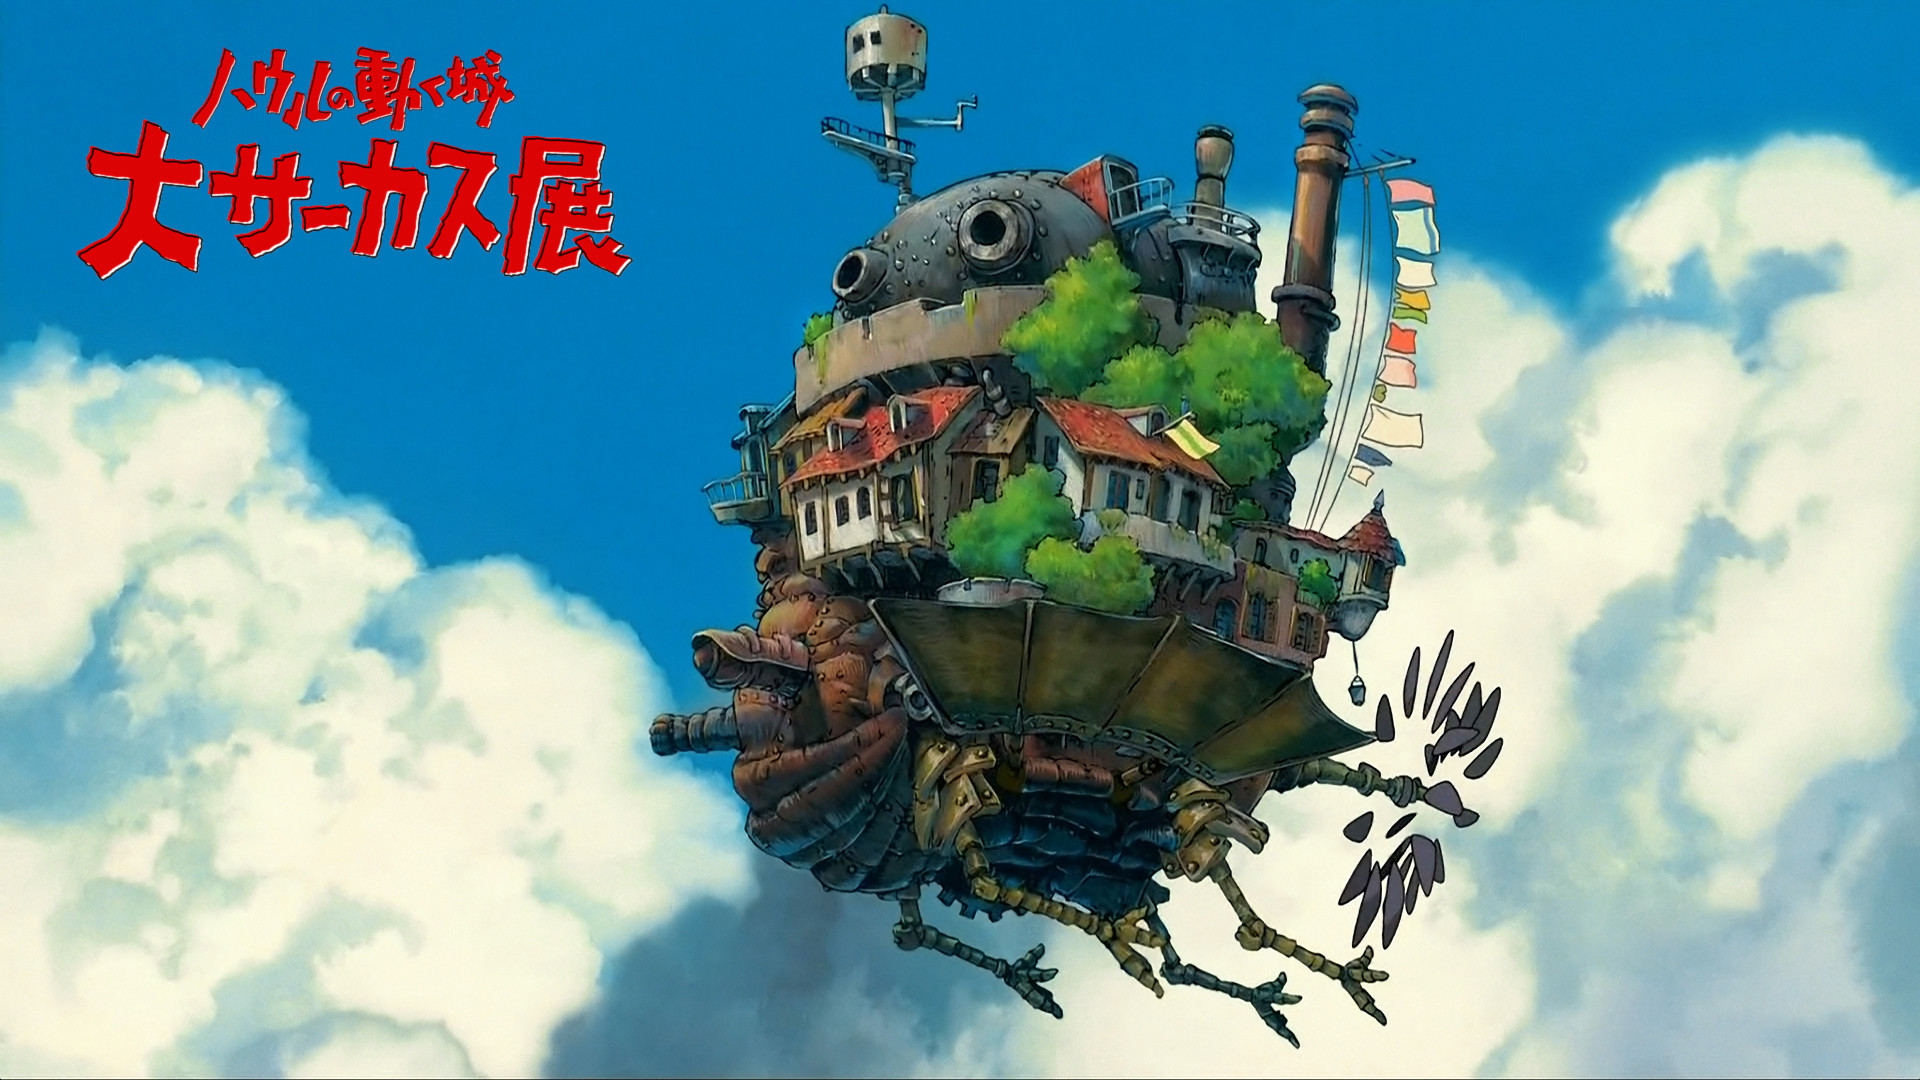 1920x1080 Howl's Moving Castle 2 (Fake) movie poster by DaisyLovin on DeviantArt